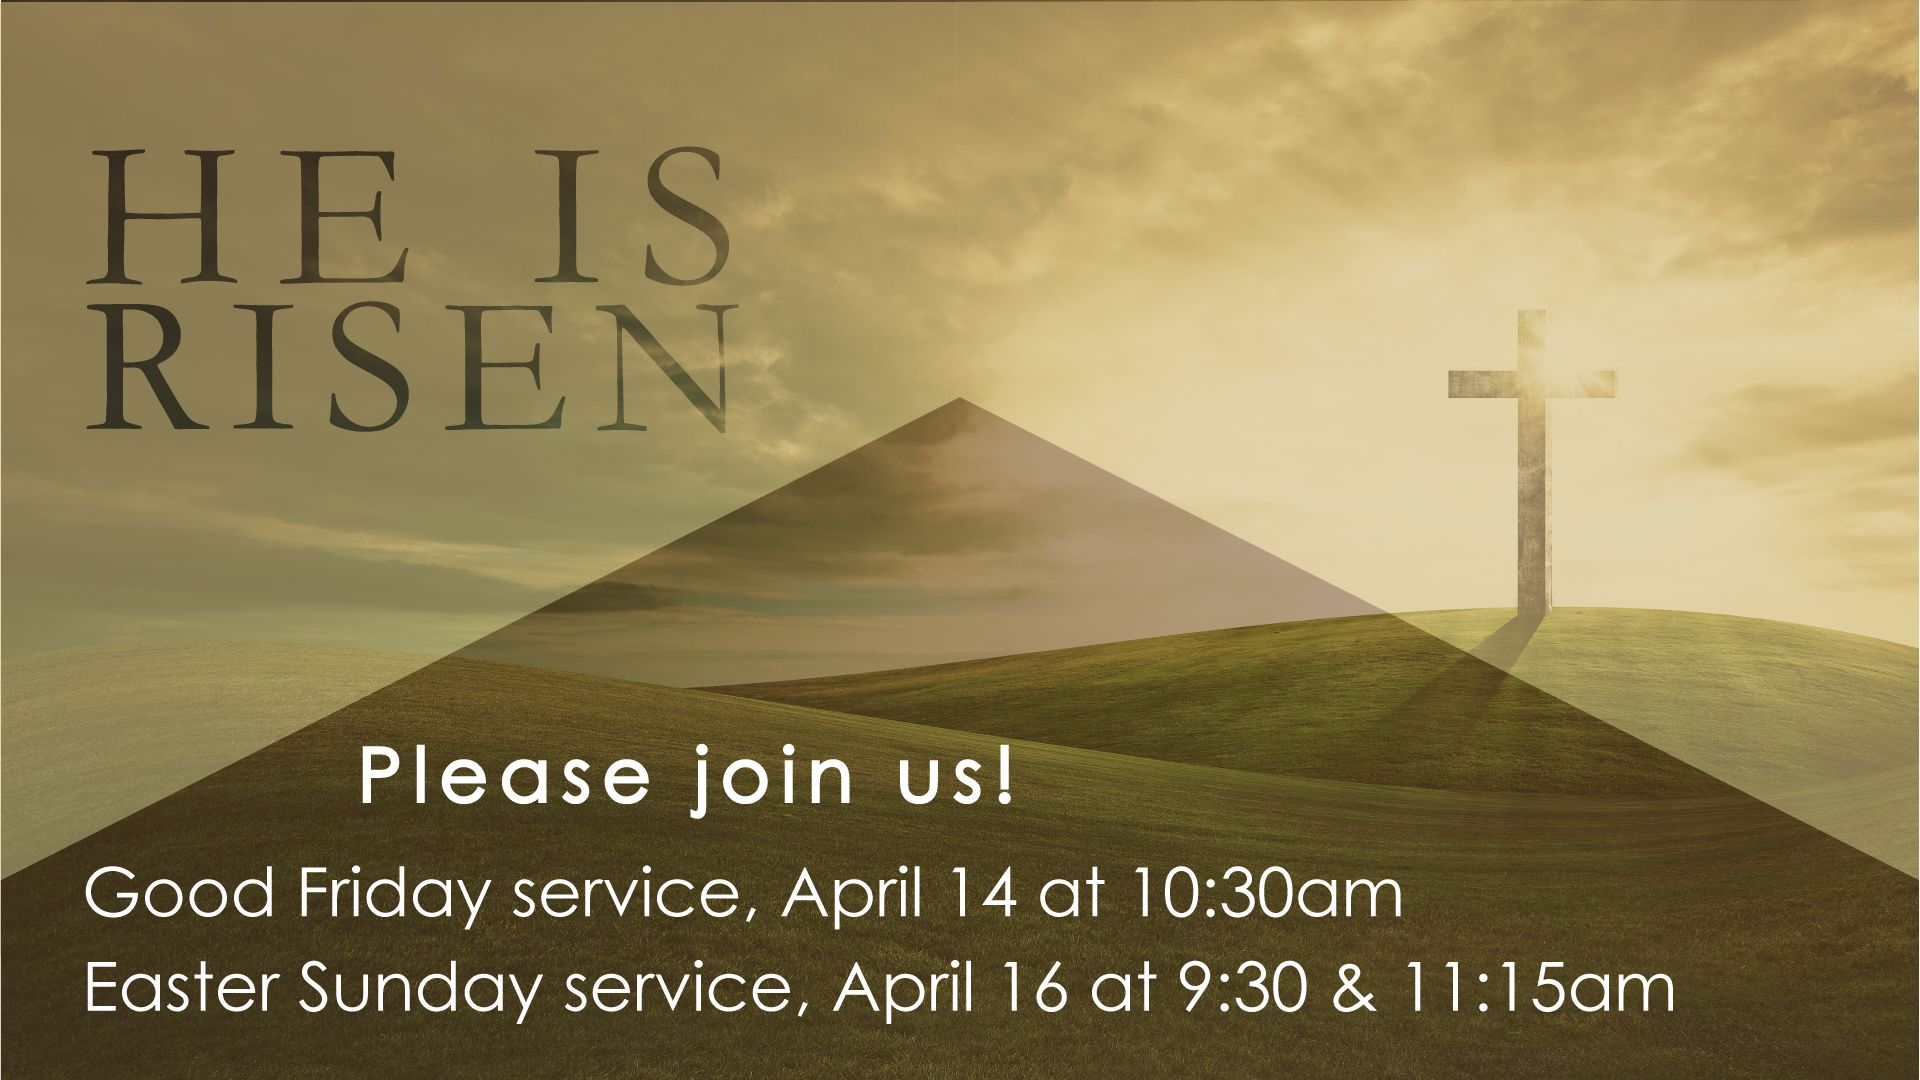 Church announcements announcement backgrounds sharefaith page 2 - Church Announcement Slide Easter Service Times He Is Risen